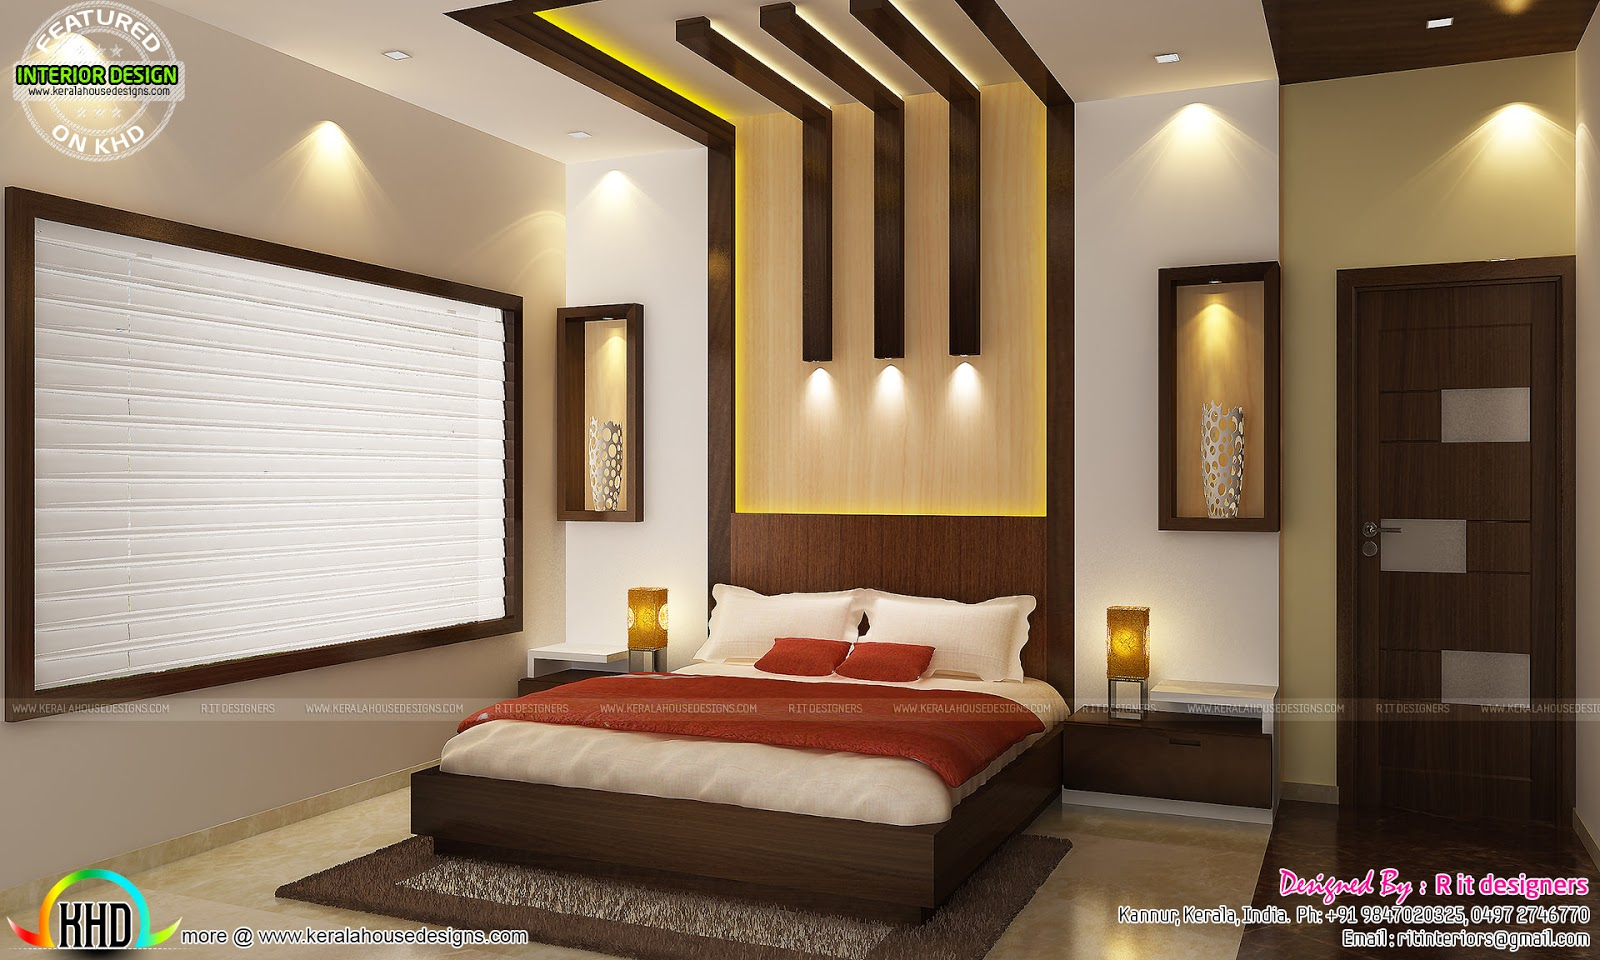 Kitchen living bedroom dining interior decor kerala for Interior bed design images